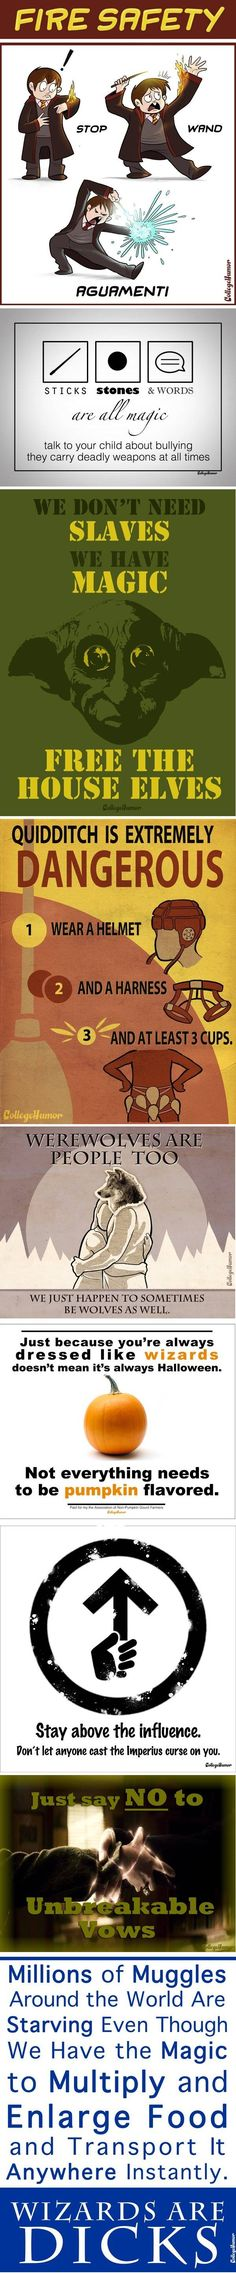 Harry Potter PSAs